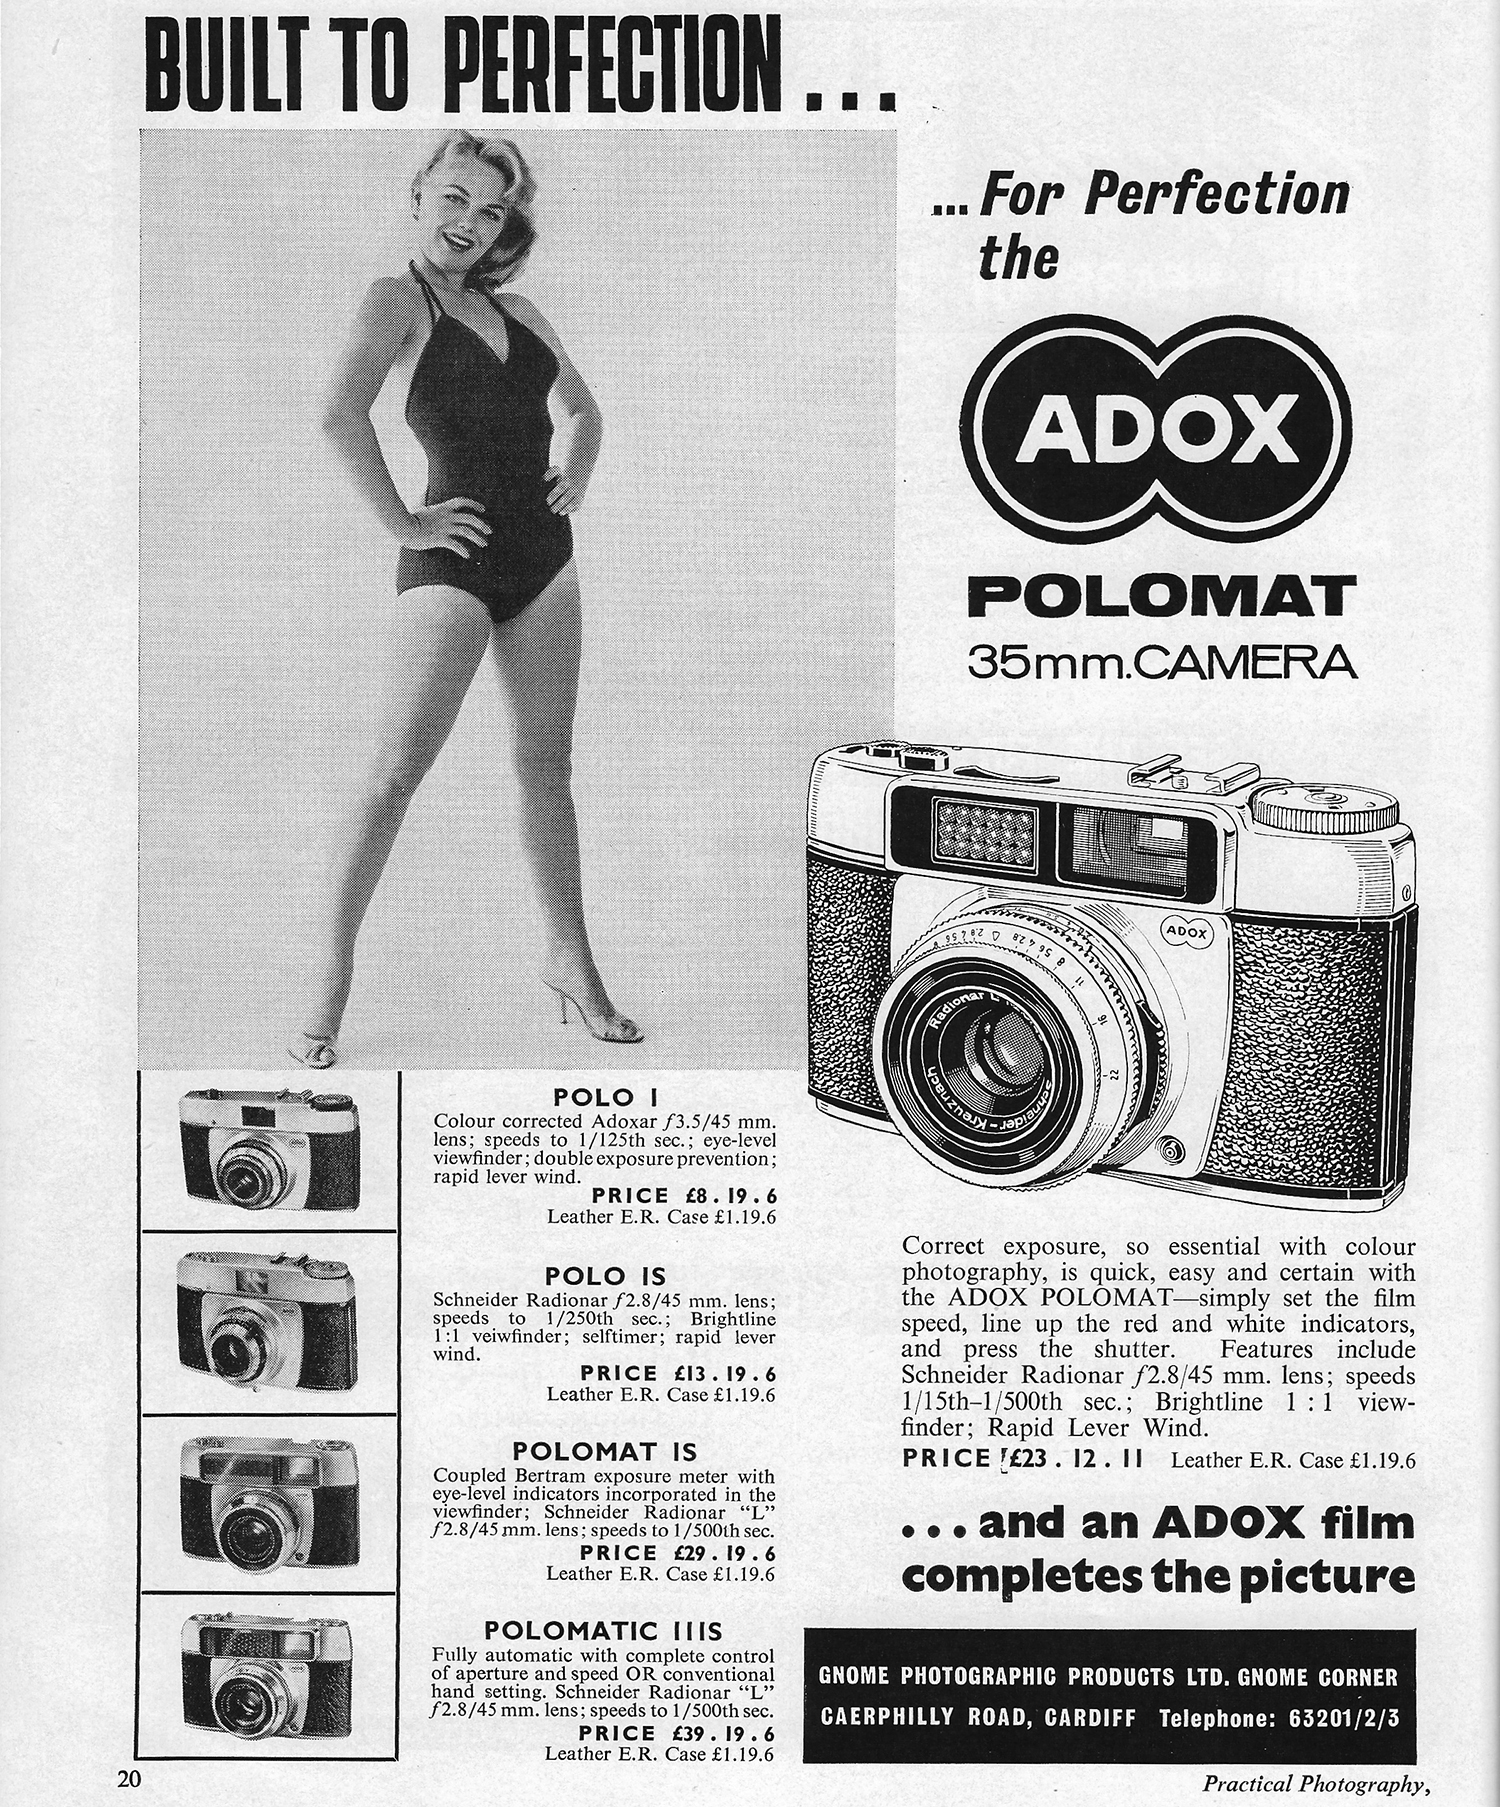 1964 camera advertisement